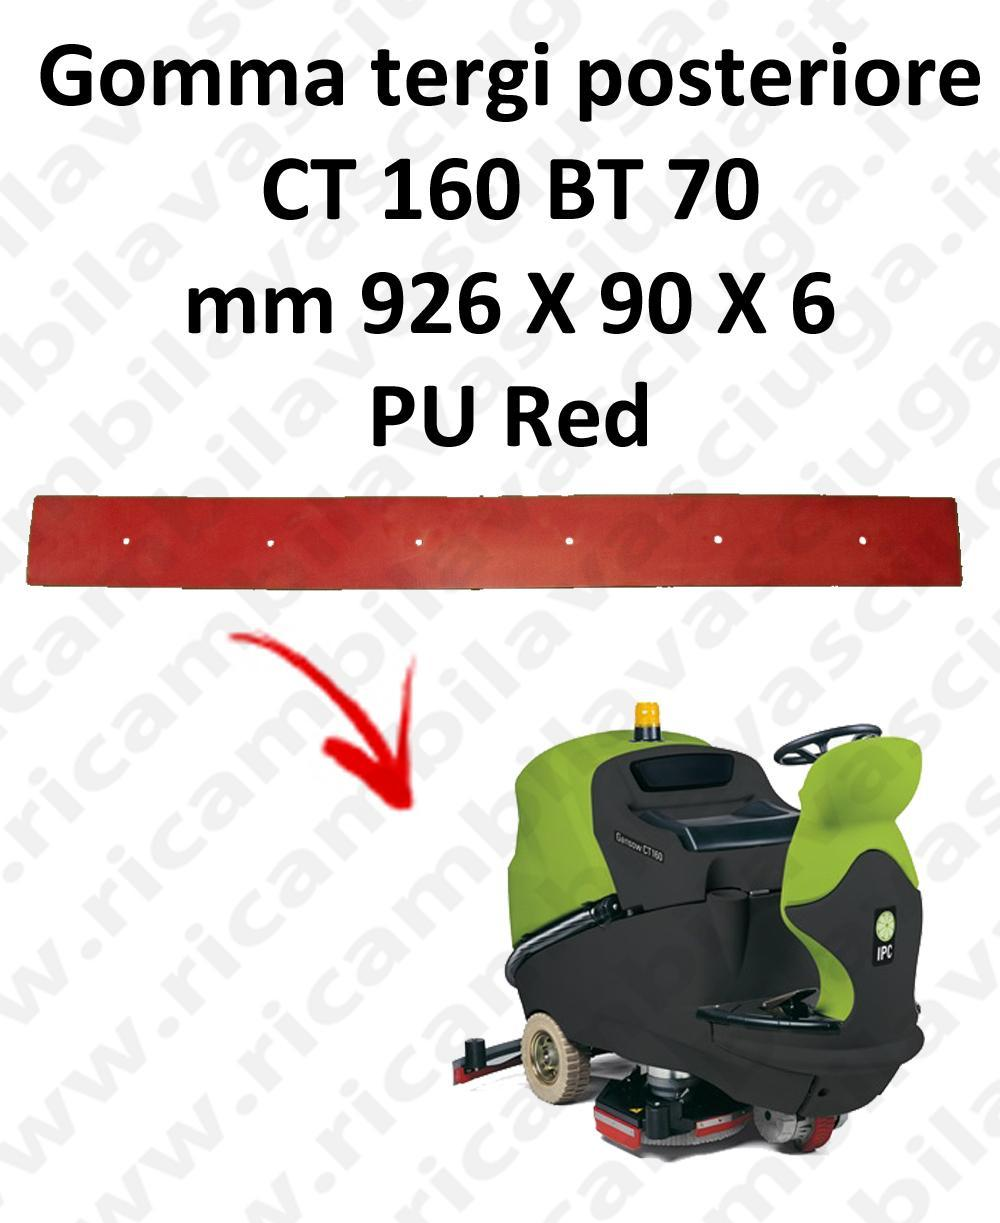 CT 160 BT 70 Back Squeegee rubber for squeegee IPC